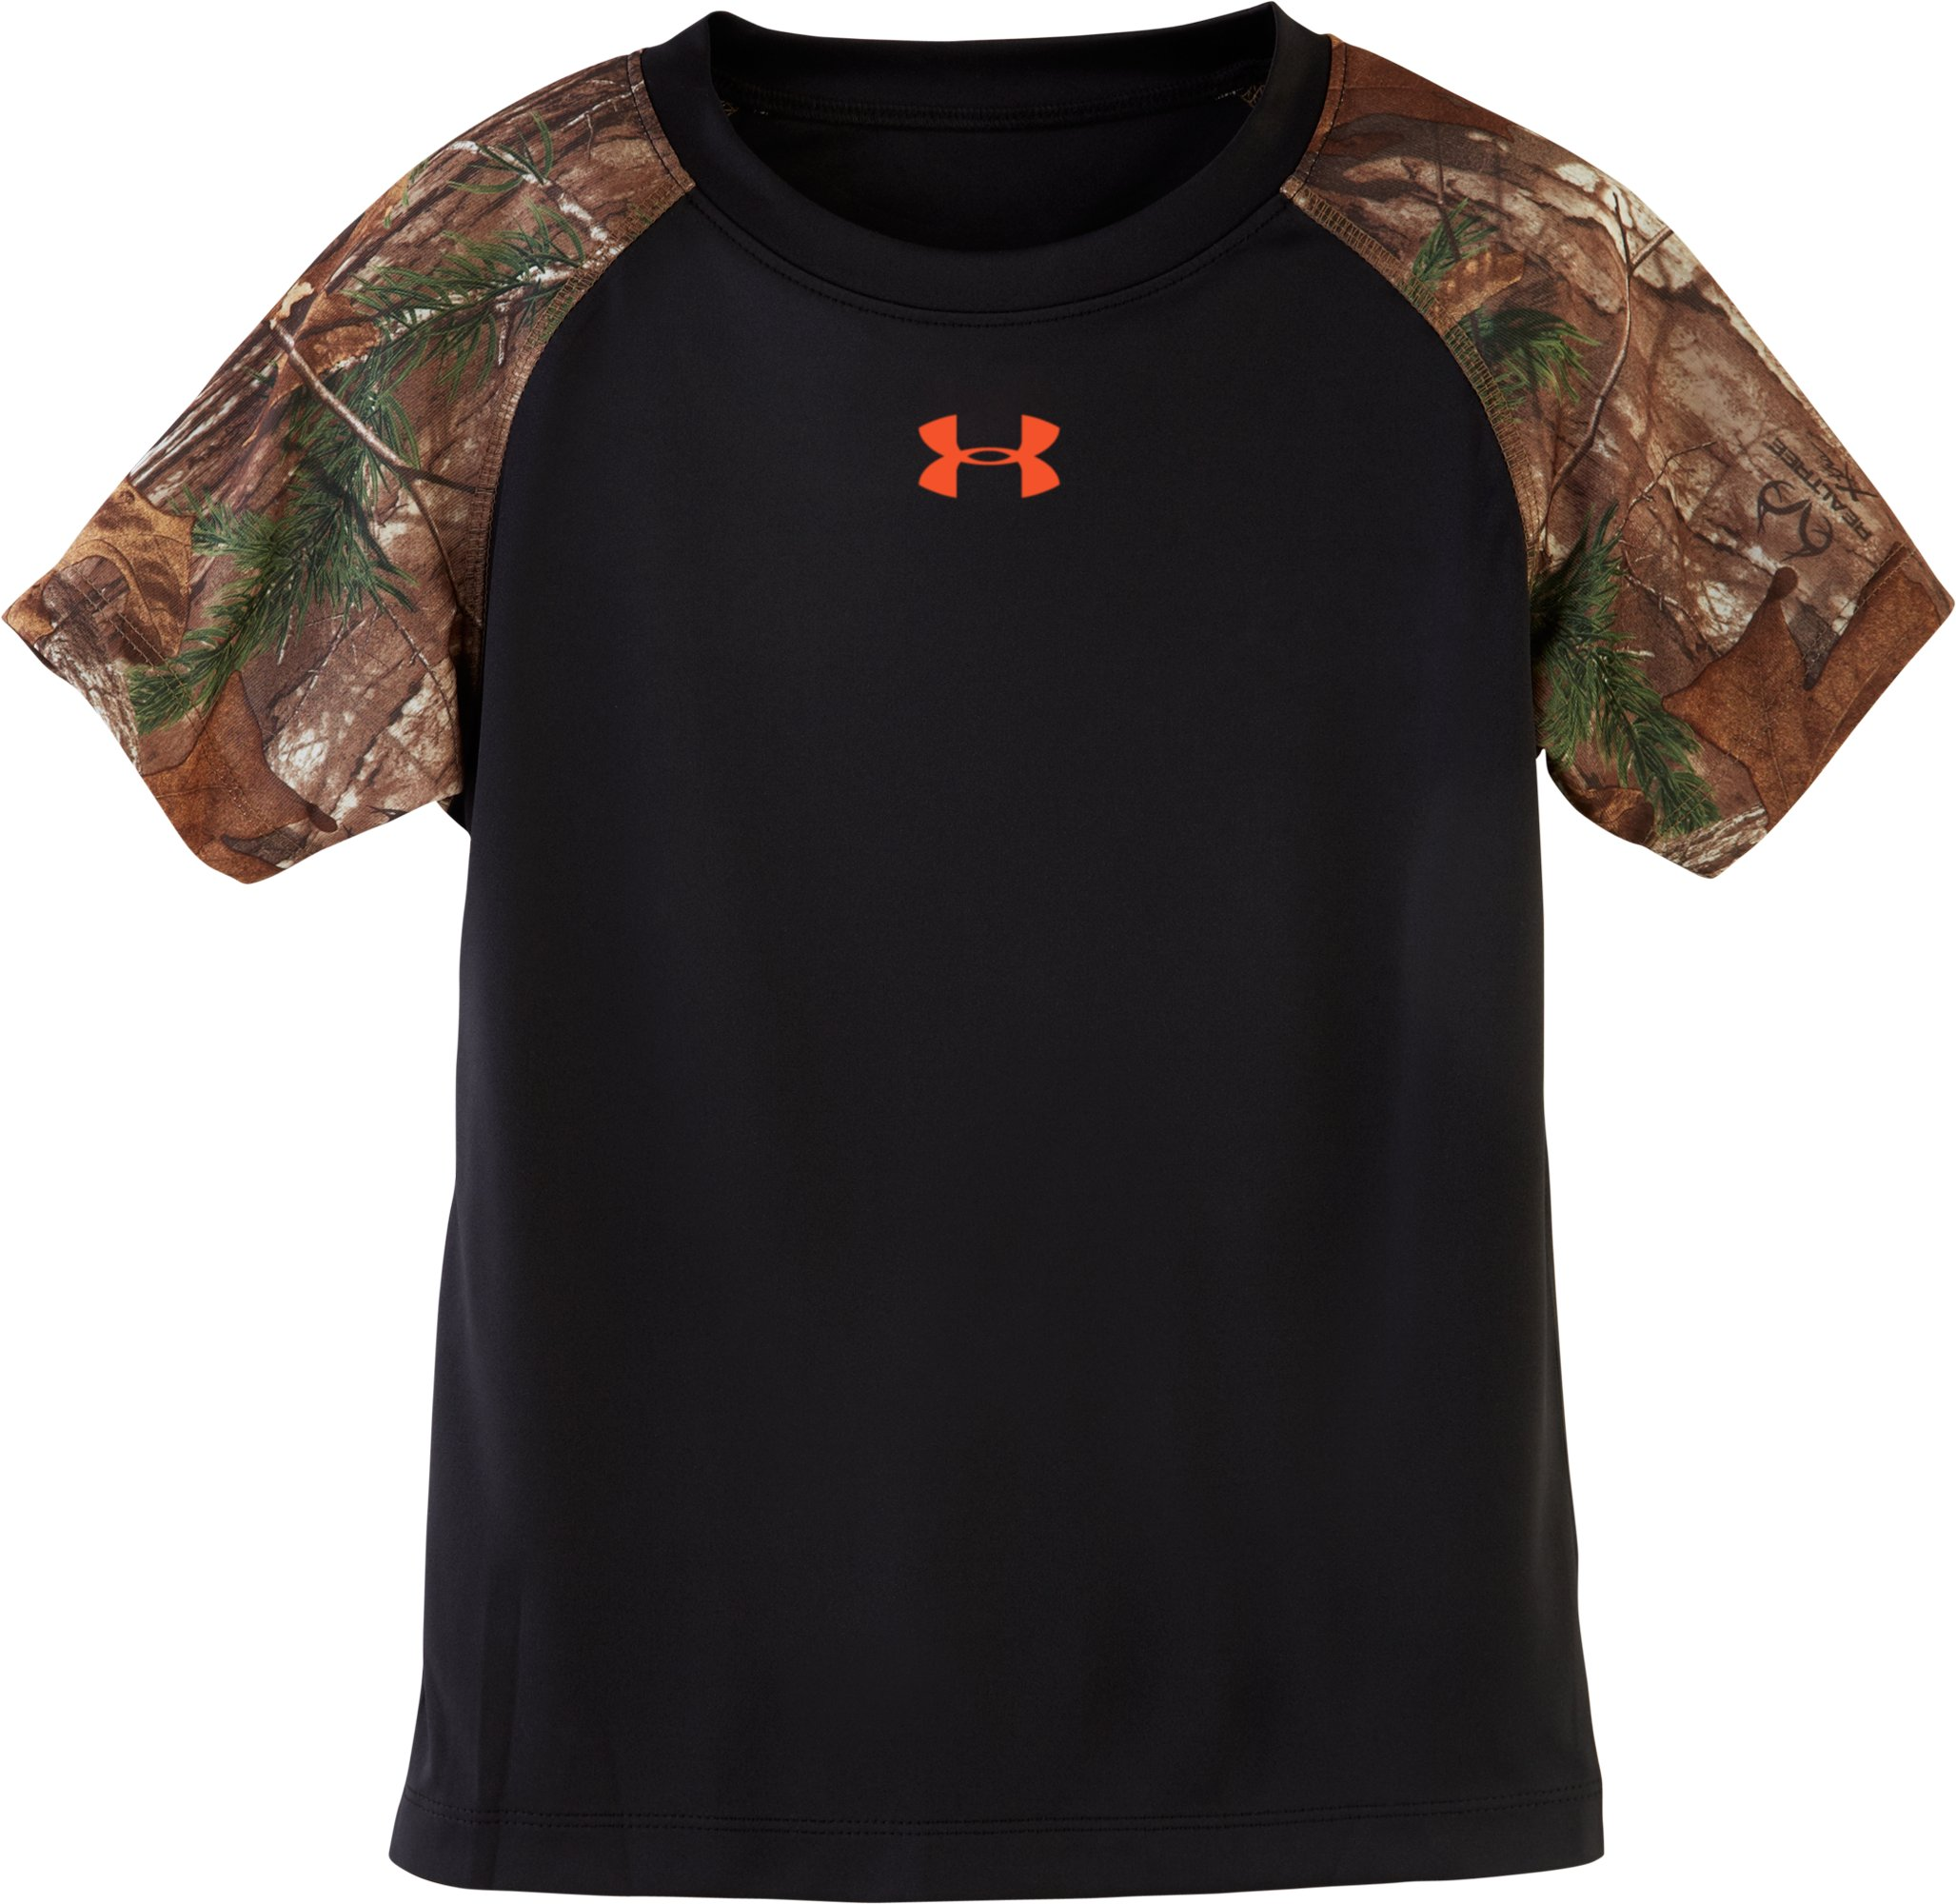 Boys' Toddler UA Camo Raglan T-Shirt, Black